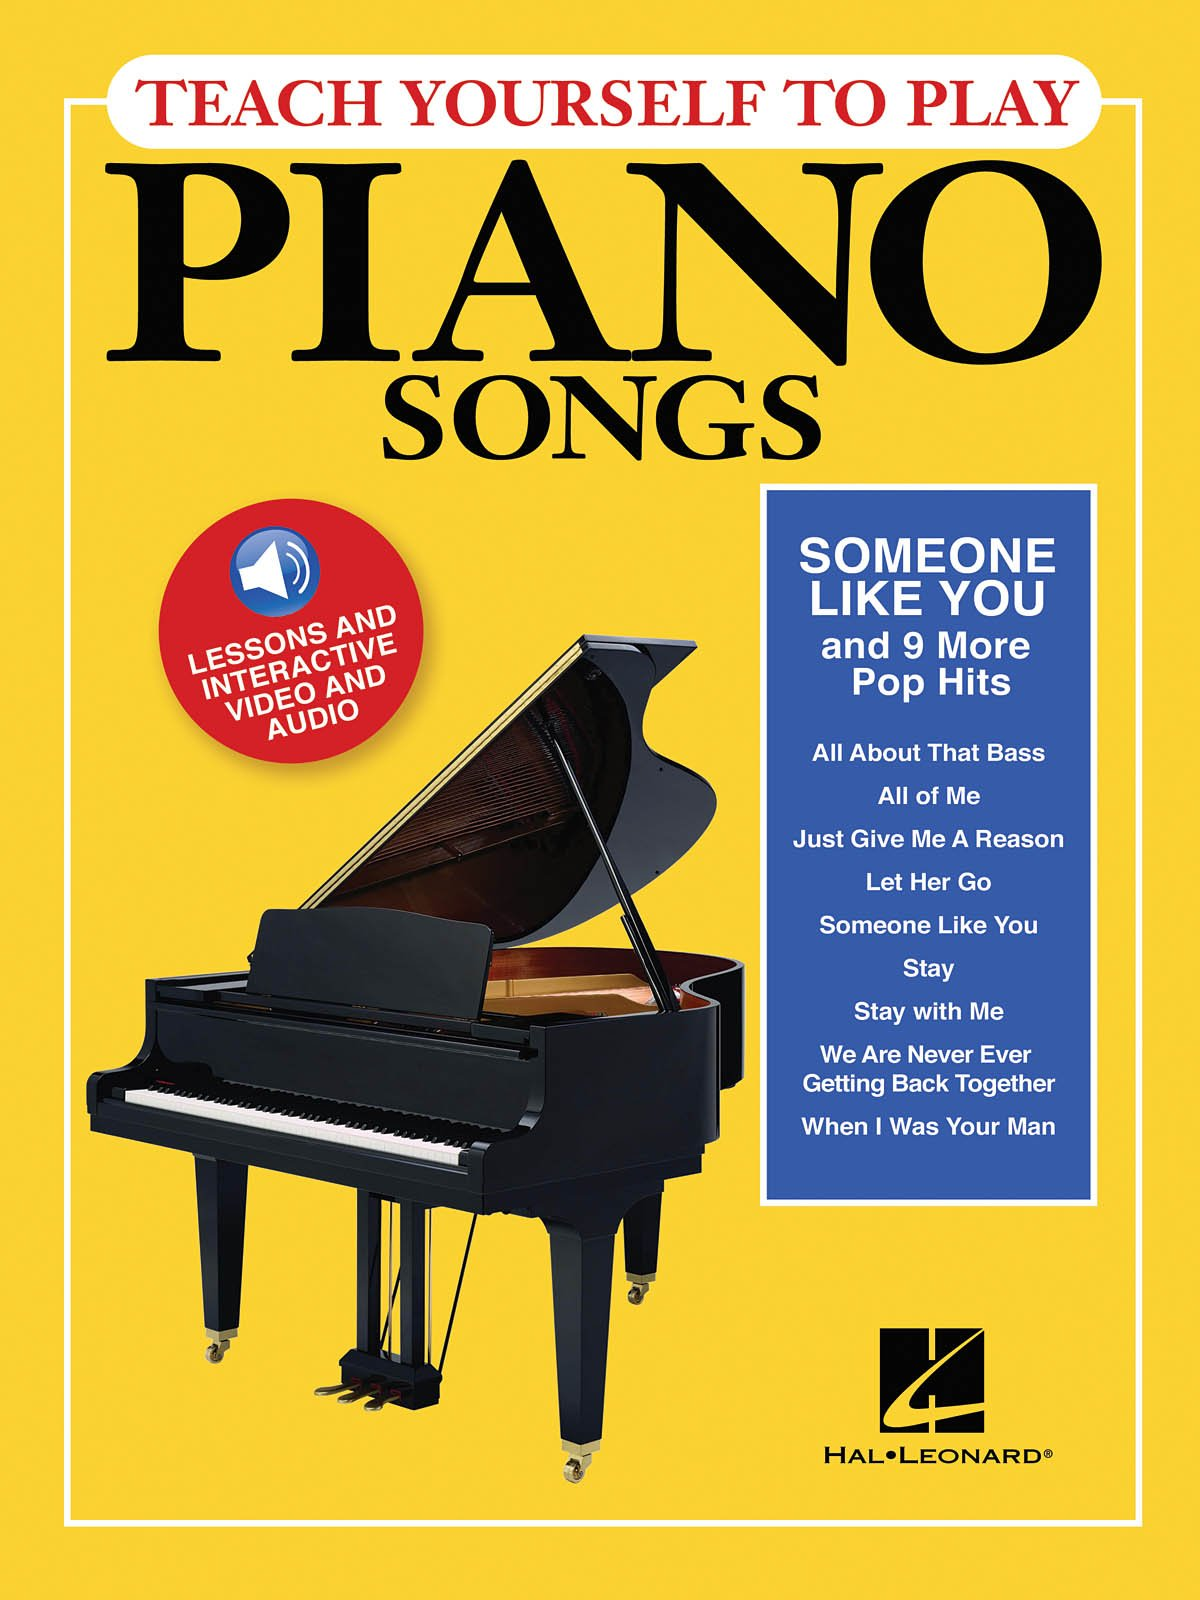 Teach Yourself to Play Piano Songs: Someone like You & 9 More Pop Hits